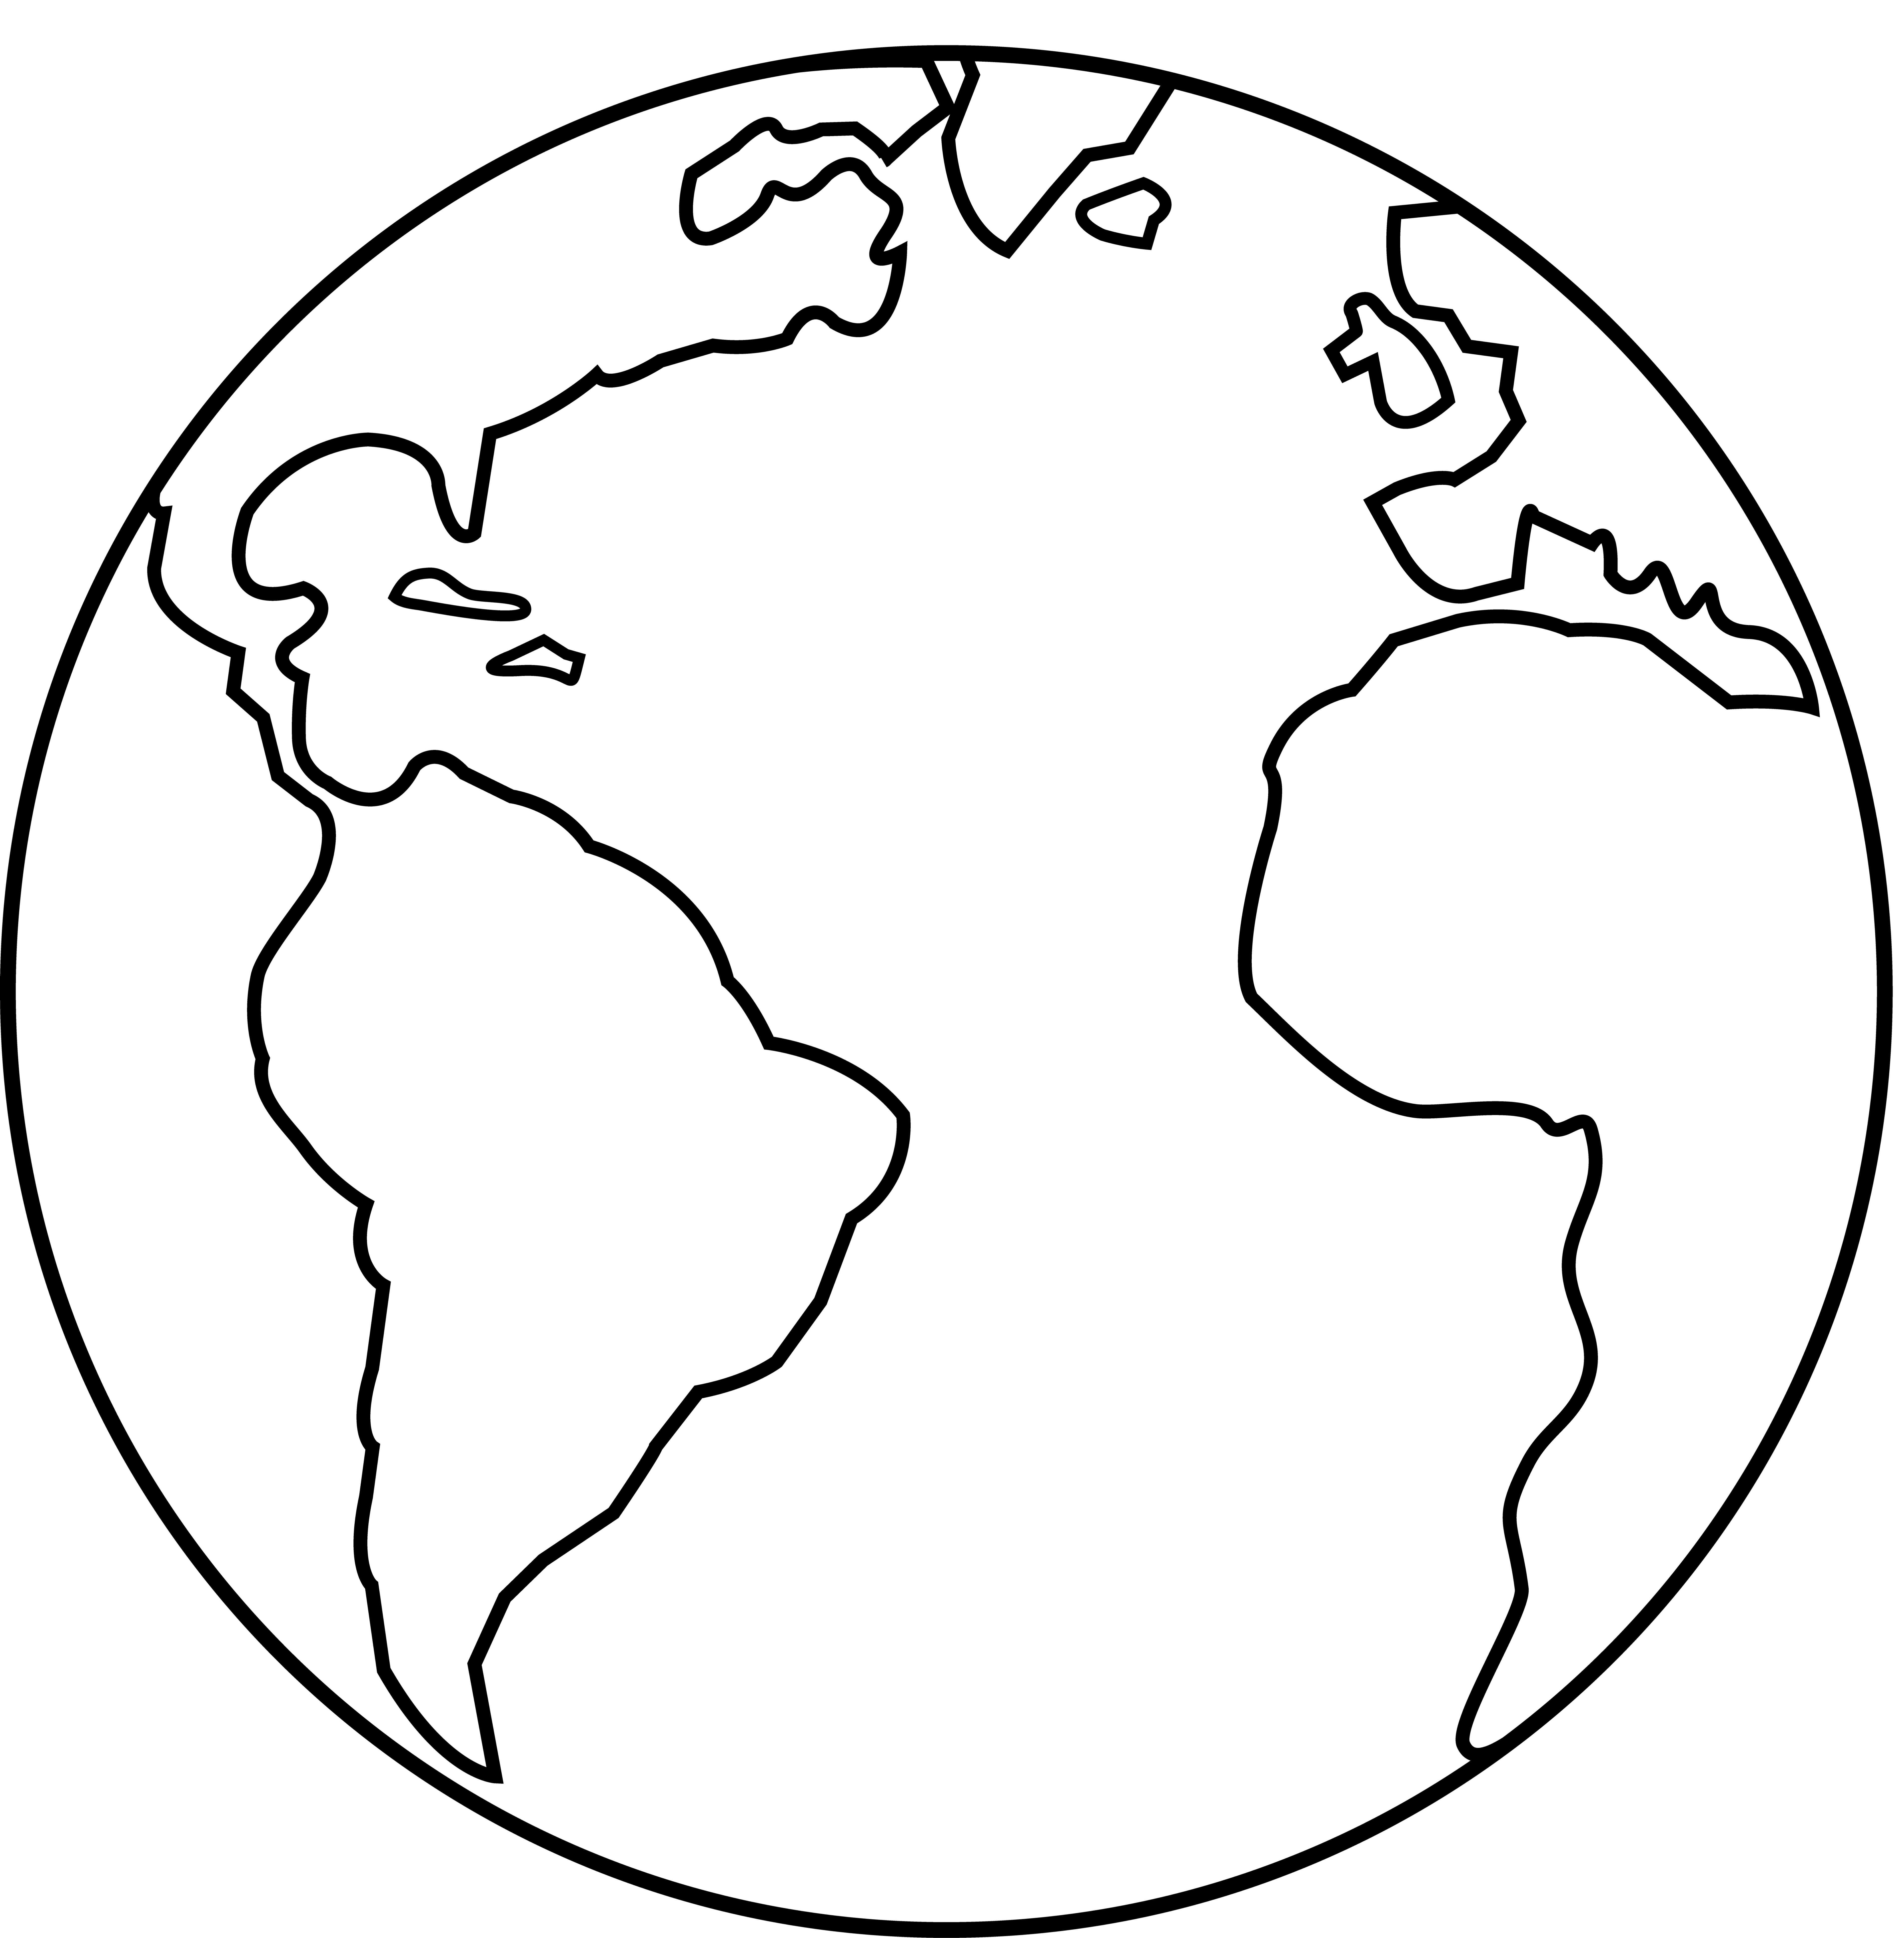 Earth Clipart Free.